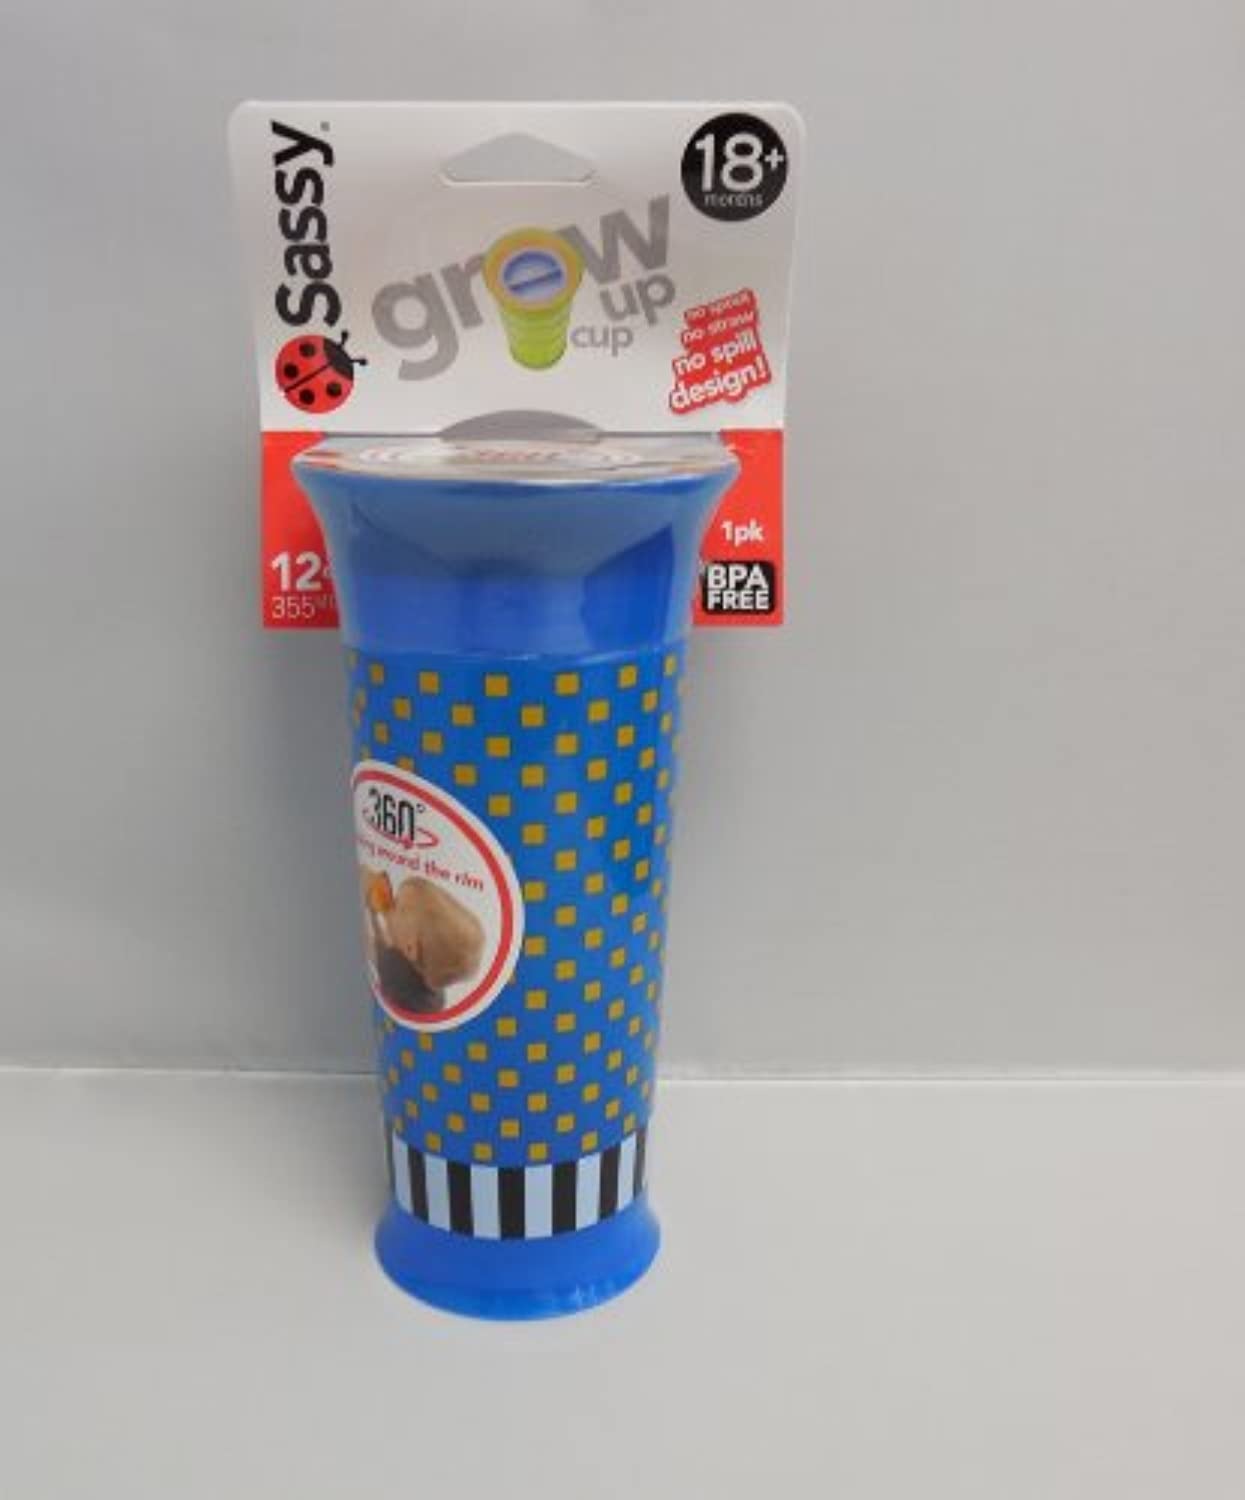 Sassy Grow Up Cup No Spout, No Spill Design 12 oz - 18 Months by Sassy